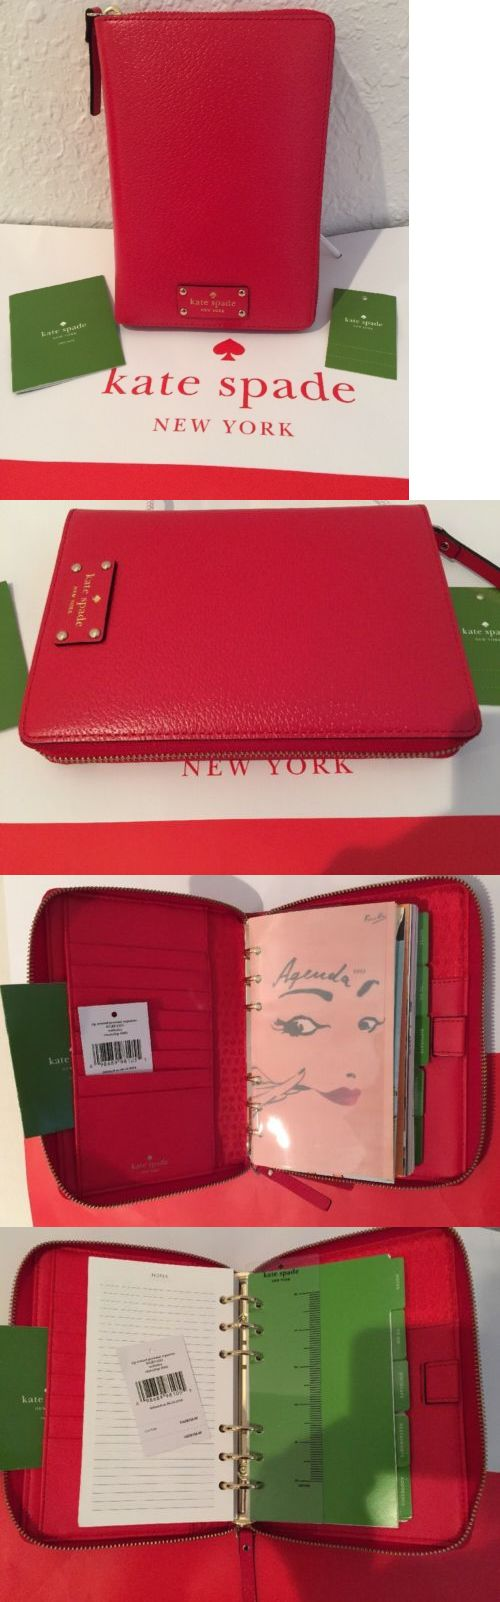 Organizers and Day Planners 15735: Nwt Kate Spade Wellesley Leather Personal Organizer Zip 2017 Planner Cherry Red -> BUY IT NOW ONLY: $77 on eBay!